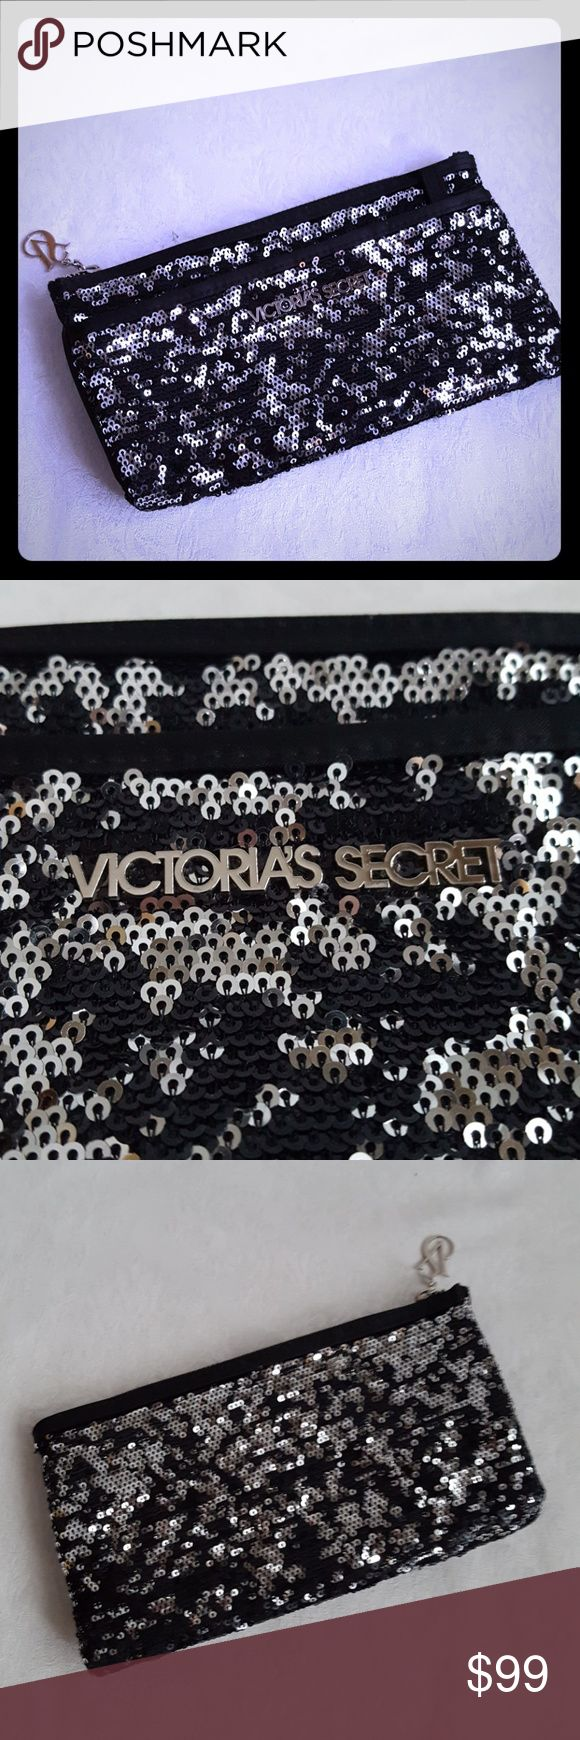 """Victoria's Secret Sequin Black & Silver Clutch Victoria's Secret black & silver sequin make up clutch bag. Bag measures approx  9"""" wide x 5"""" tall. Zip front pocket. Zip top closure. Black satin lining. Very versatile. Could also be used as a clutch purse.   Excellent used condition. Smoke free and pet free home.  Check out my other listings - 100's of shoes, boots and bags. Bundle 2 or more and save money! Victoria's Secret Bags"""